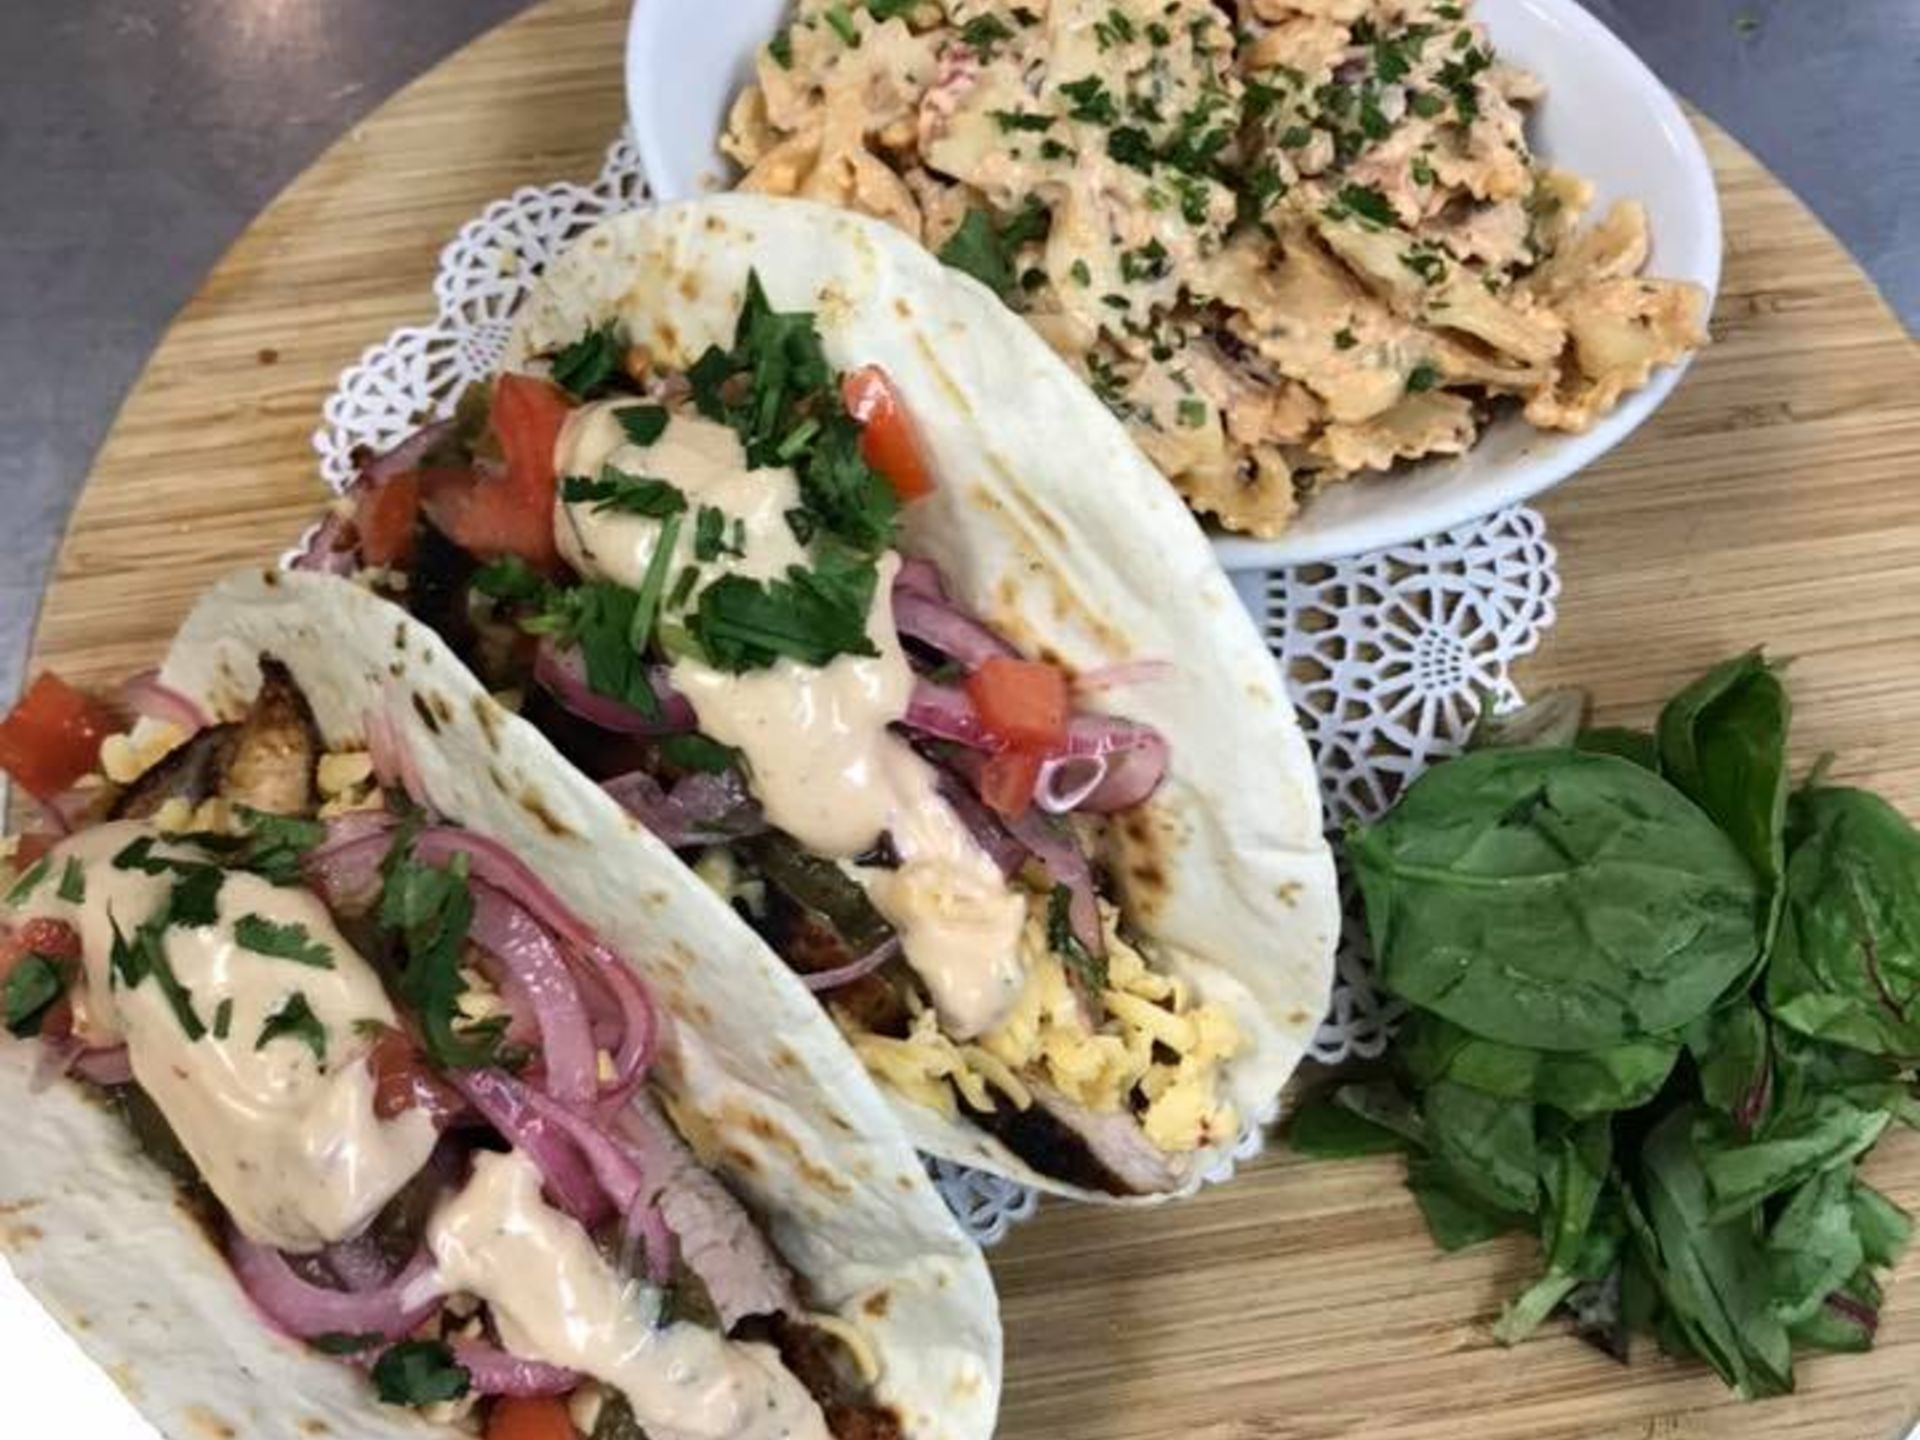 tacos and a side of pasta salad